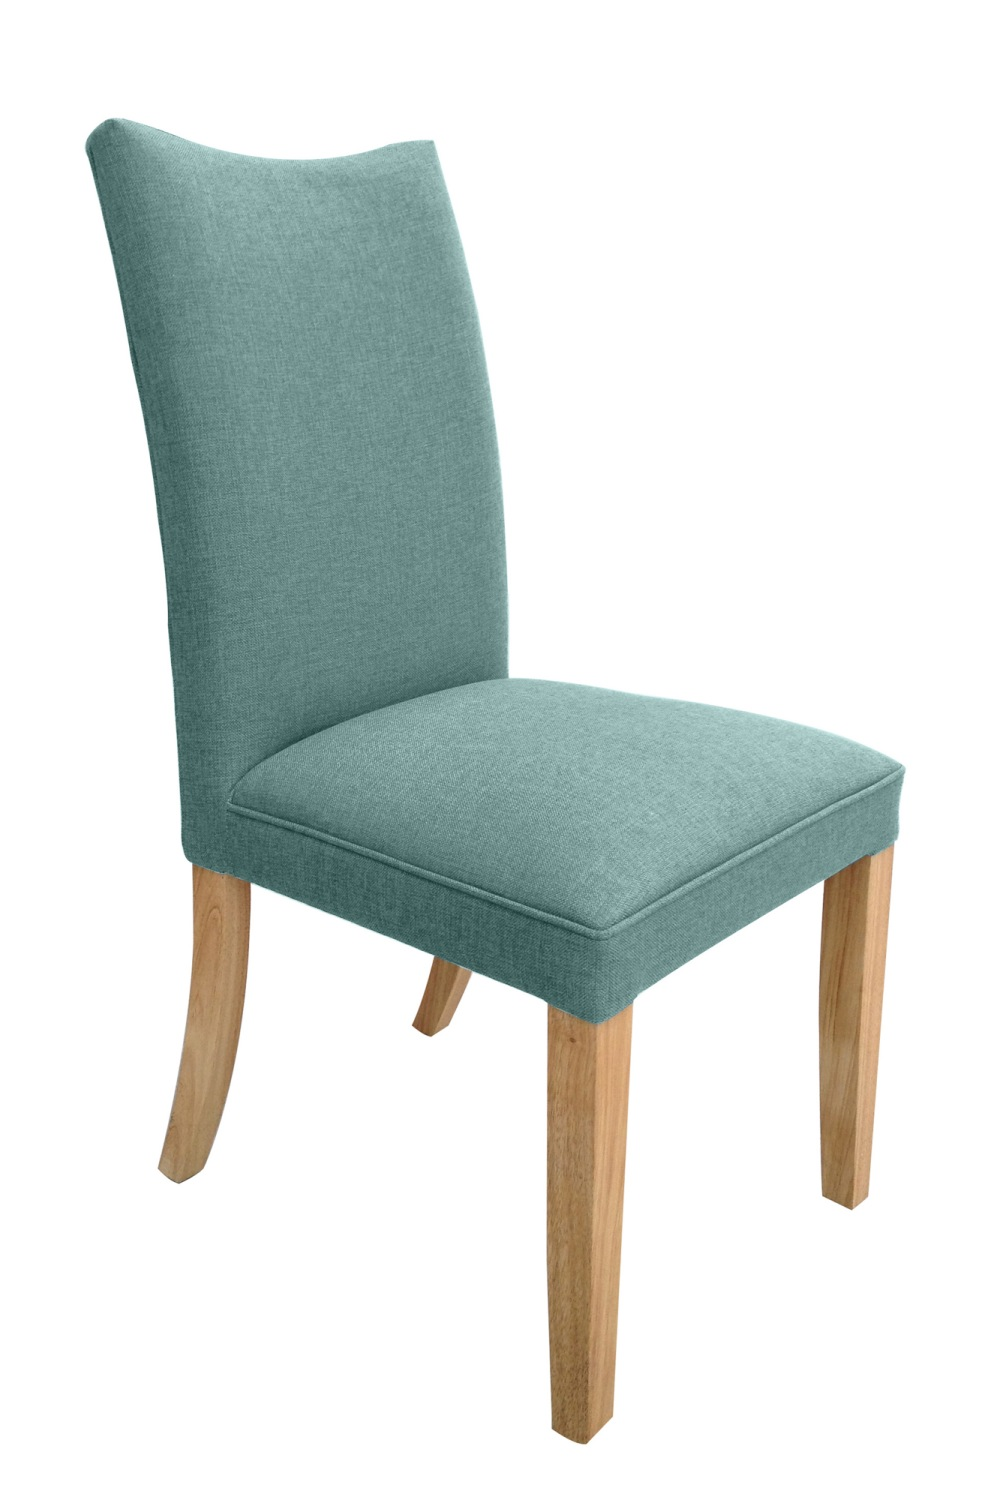 Fabric Dining Chairs Teal village green fabric dining chair range